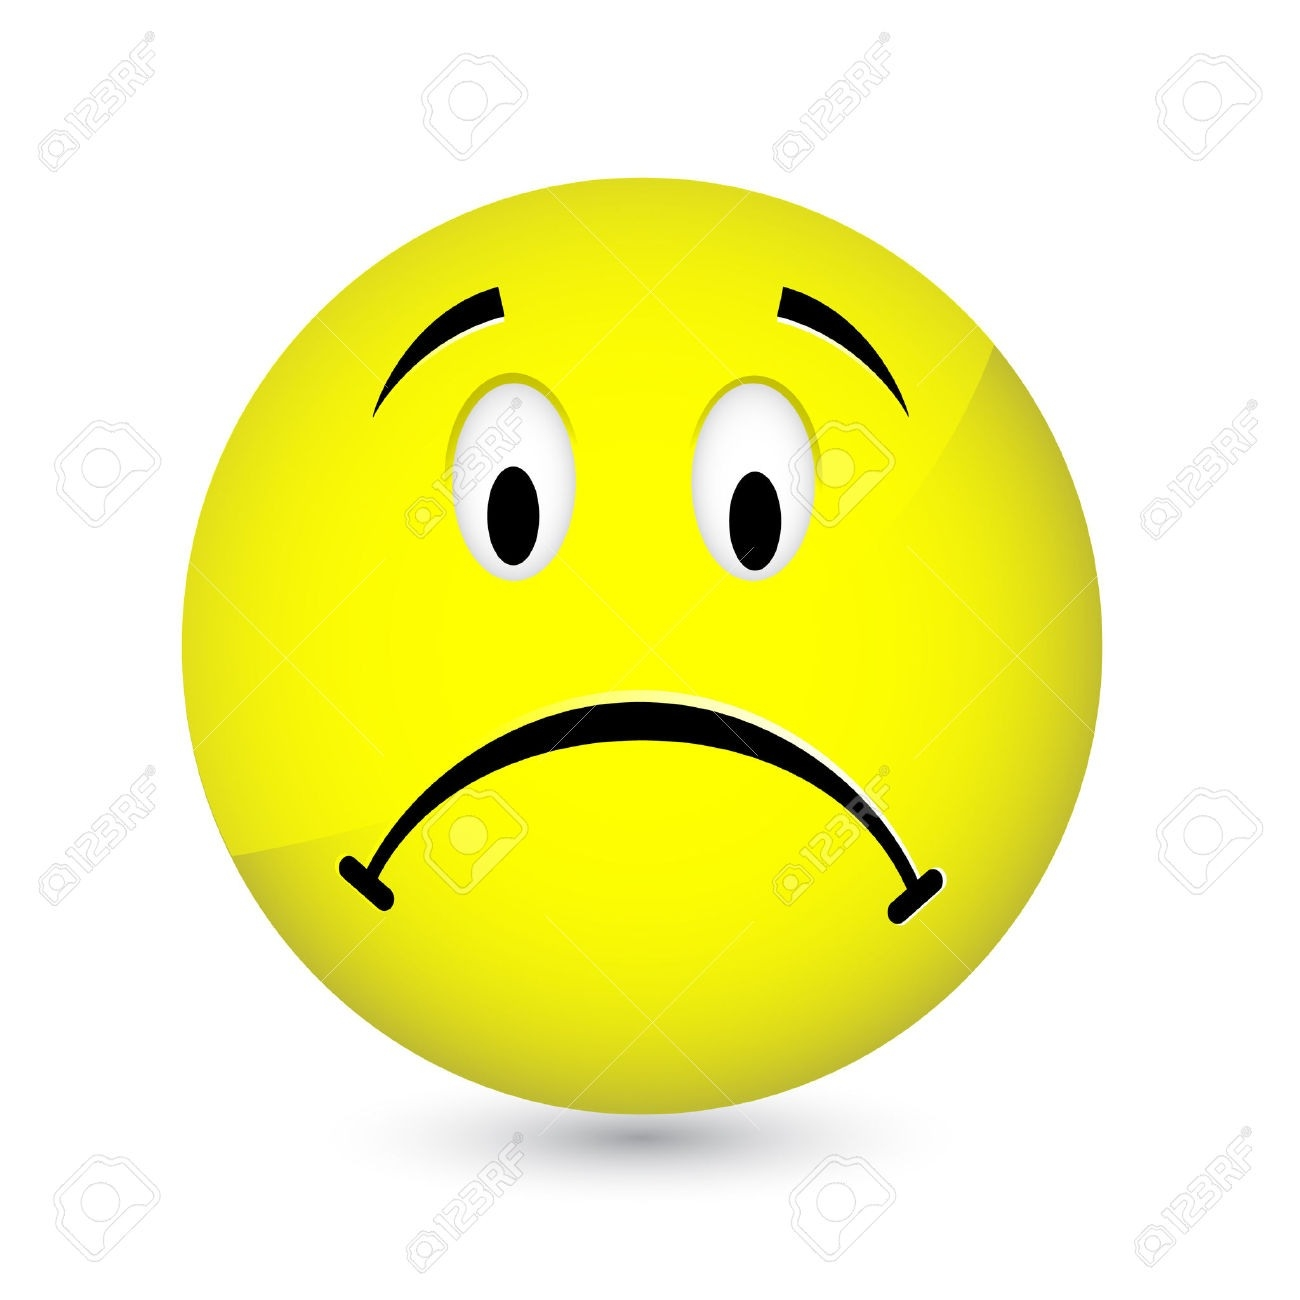 Crying Smiley Face Clipart.